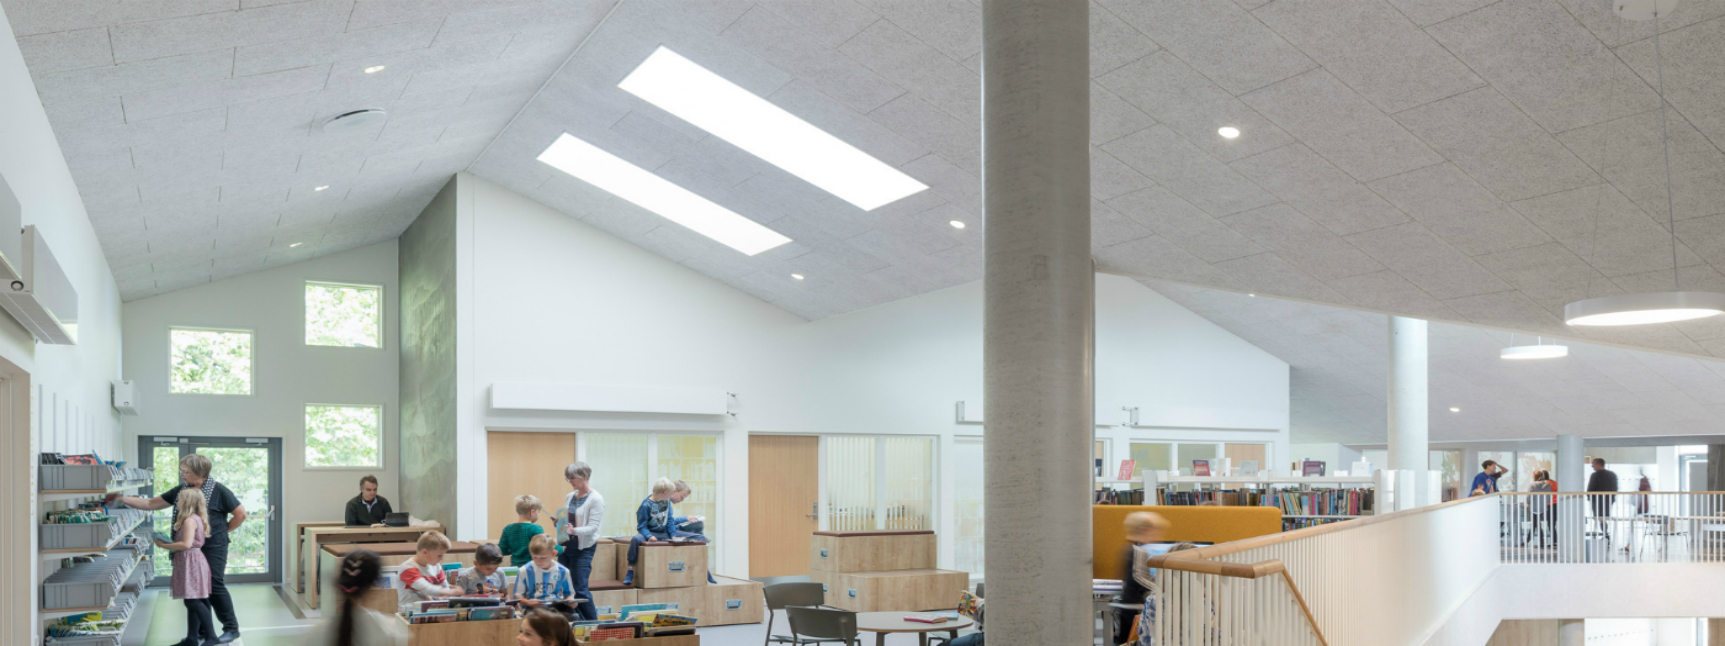 6 Reasons Why Schools Should Utilise Natural Light